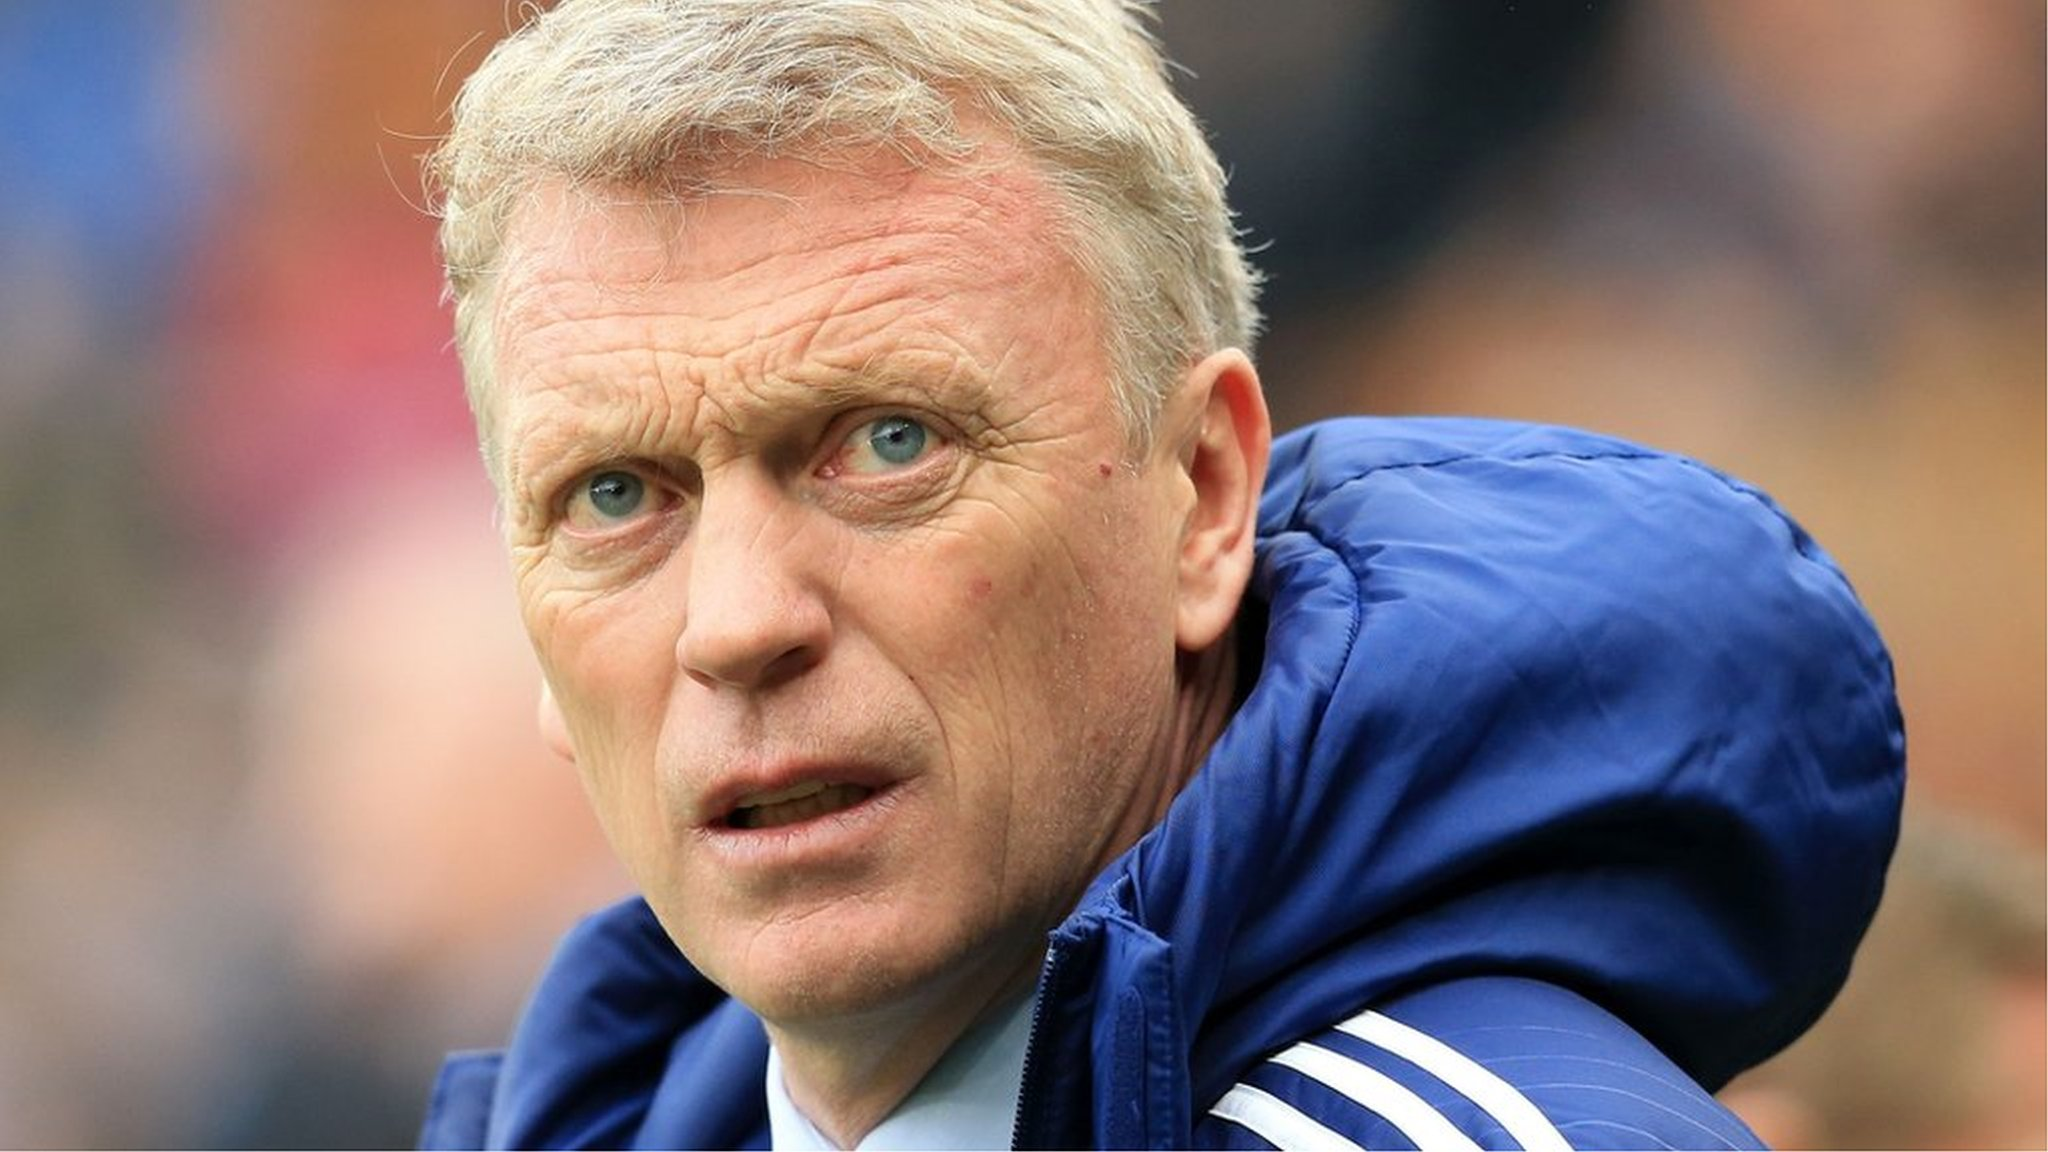 David Moyes resigns as Sunderland boss after relegation from Premier League